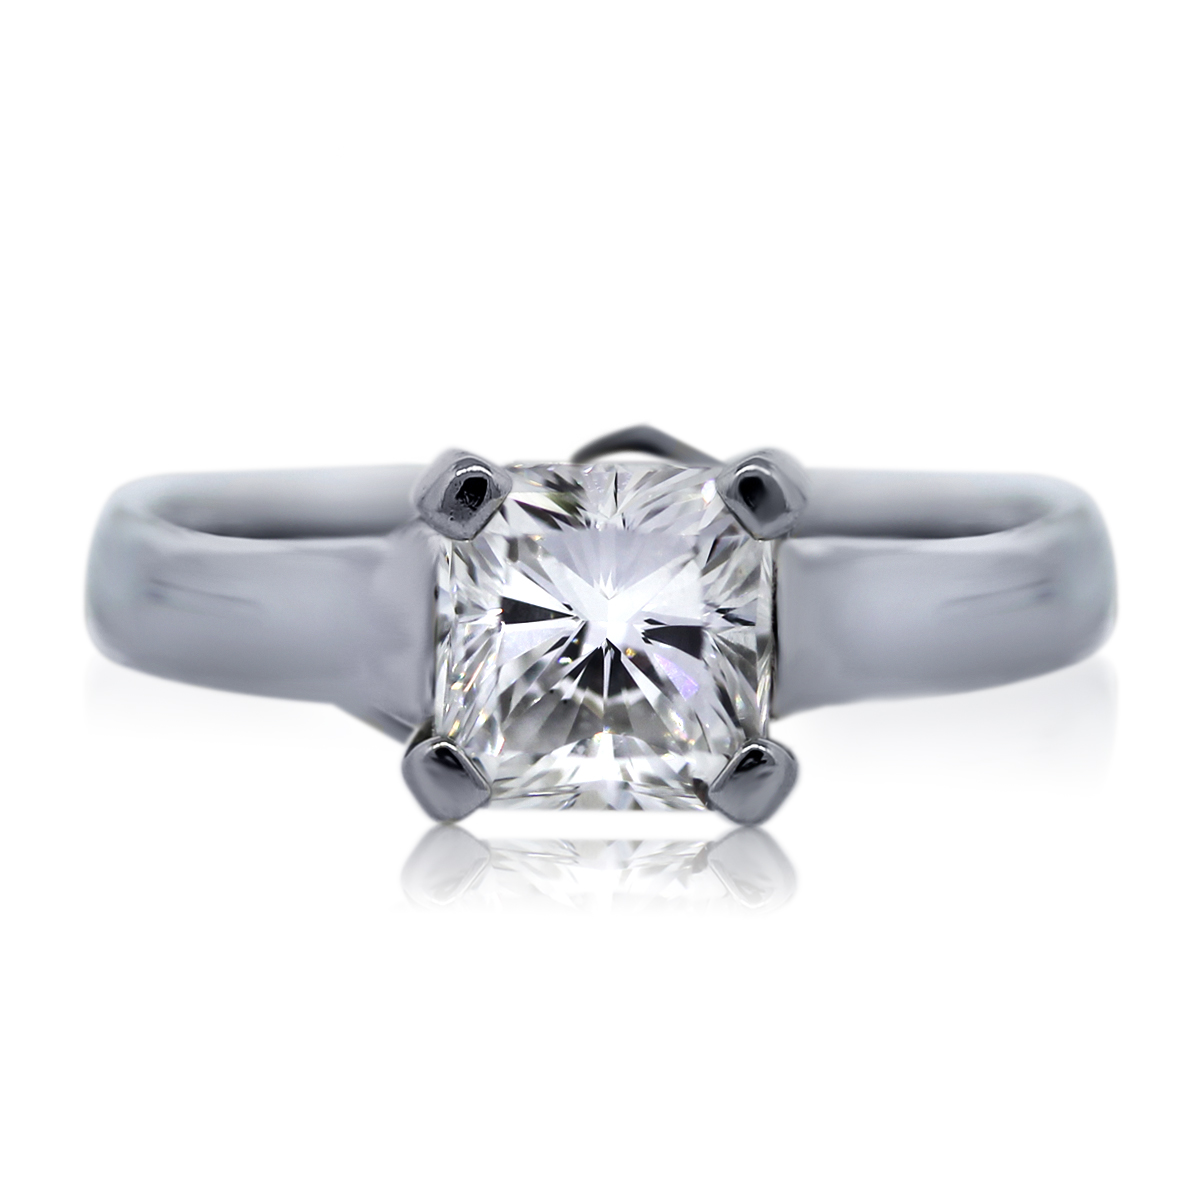 Platinum GIA 1 01ct Square Radiant Cut Diamond Engagement Ring